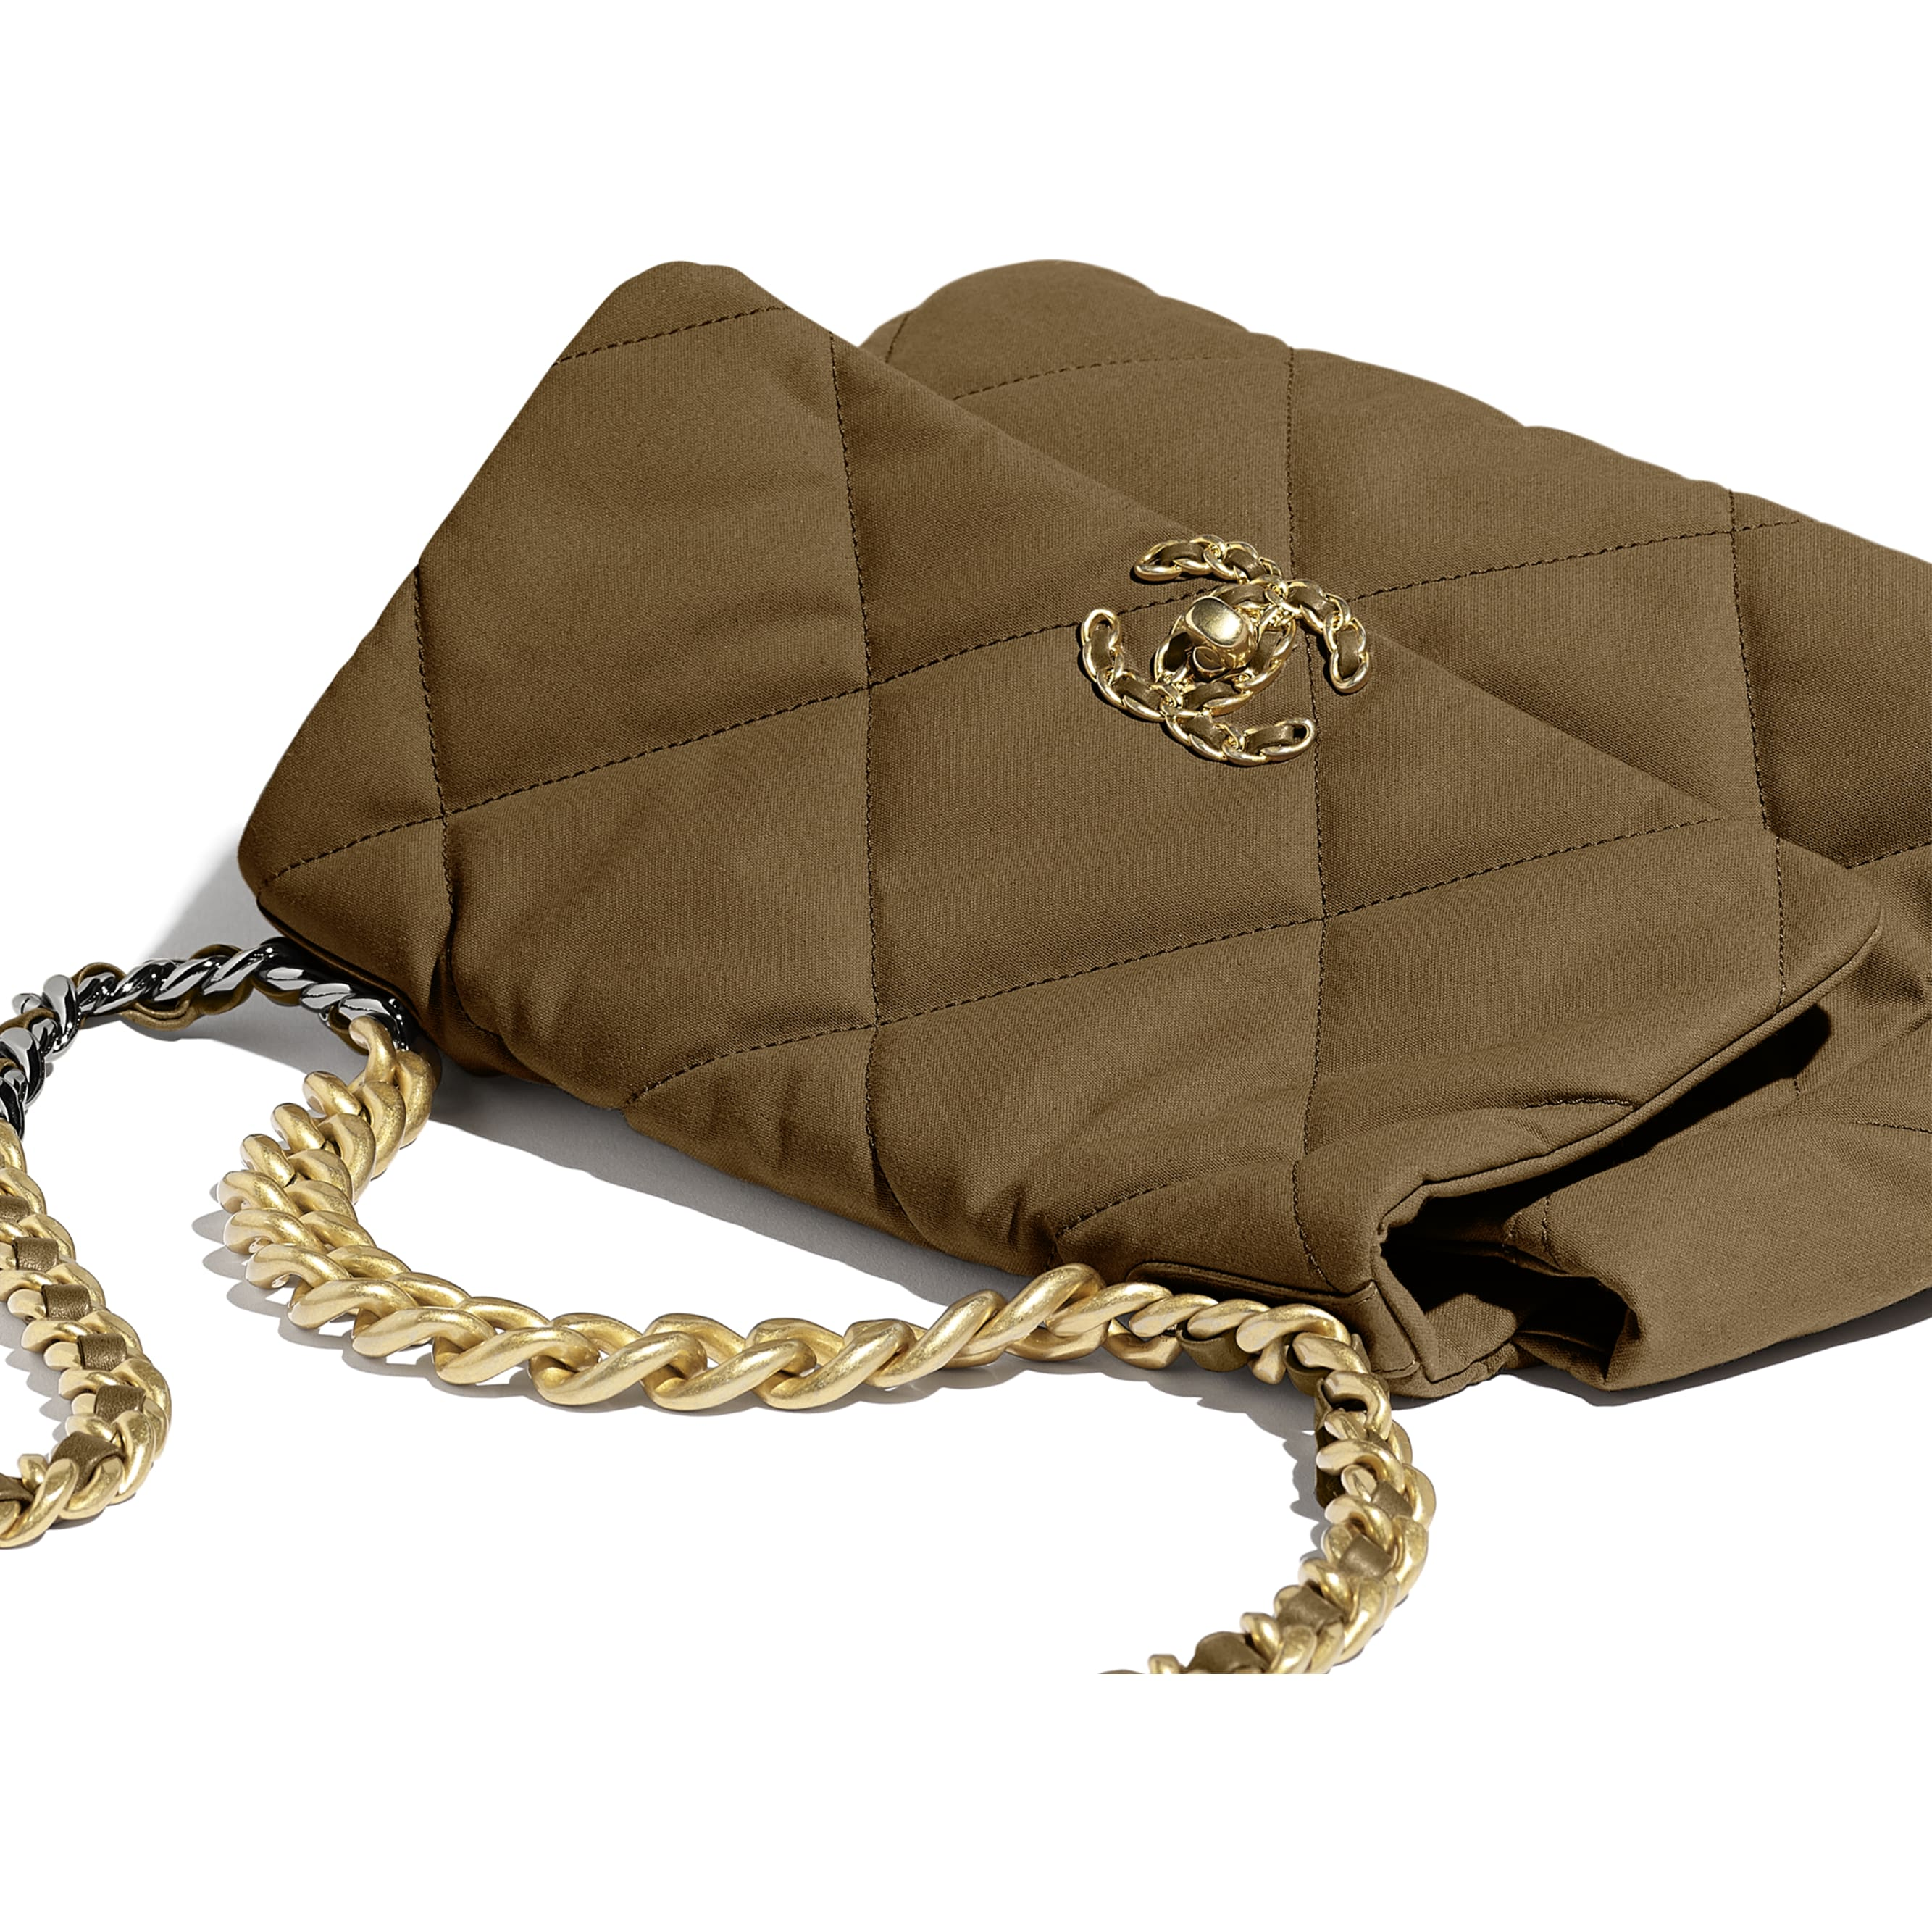 CHANEL 19 Large Flap Bag - Bronze - Cotton Canvas, Calfskin, Gold-Tone, Silver-Tone & Ruthenium-Finish Metal - CHANEL - Extra view - see standard sized version